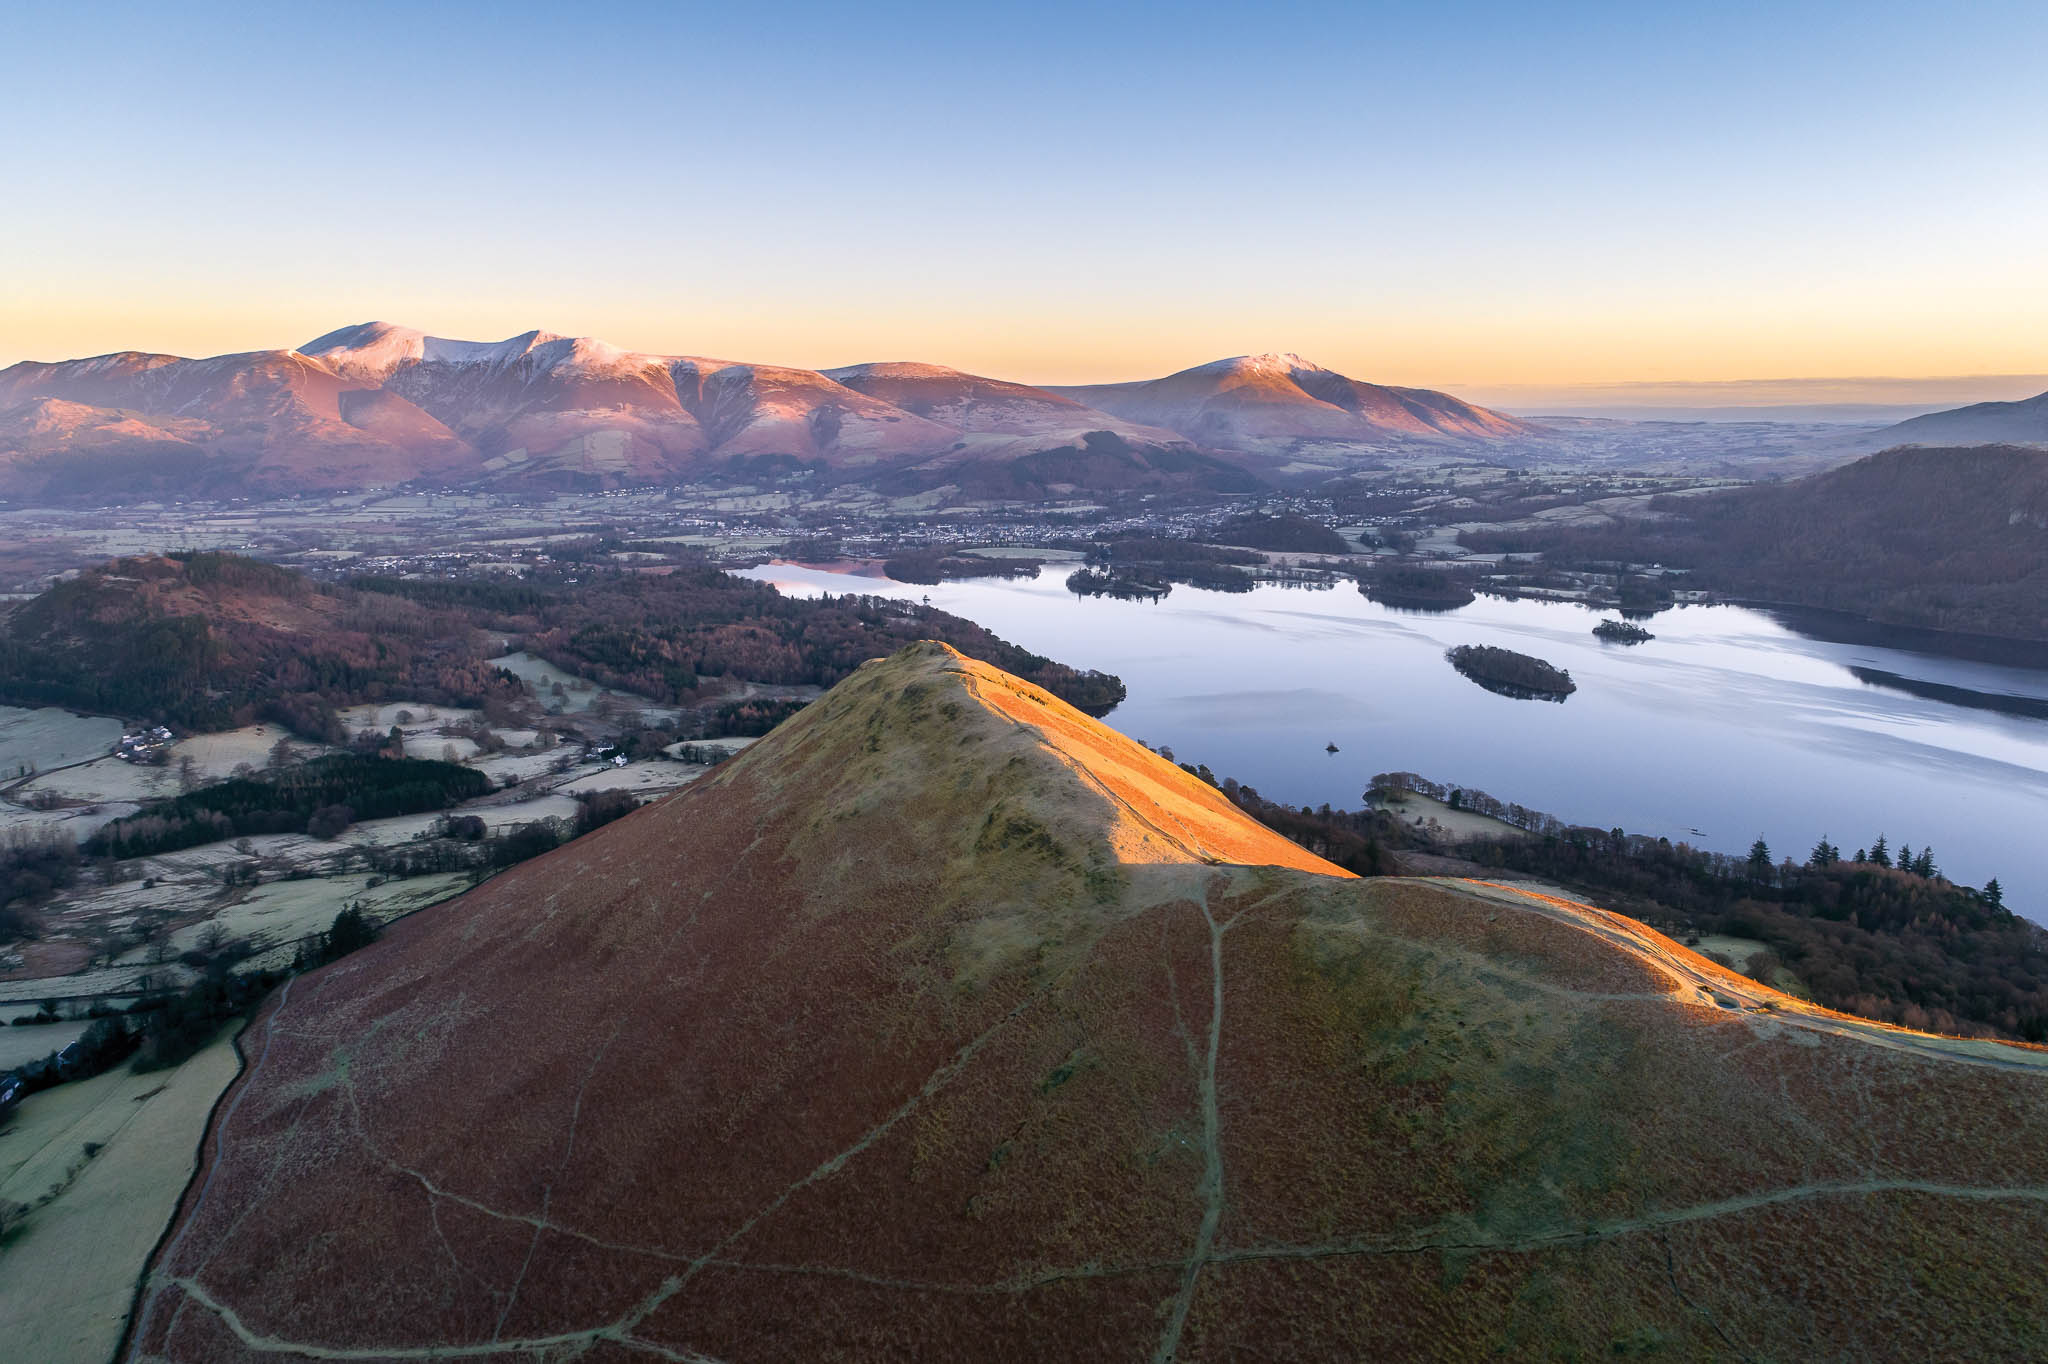 Catbells Dawn - This image was taken during the first days of the new year, our ascent of Catbells began in the dark around 5am, there's nothing better than seeing a new day come to life from atop a deserted mountain.Here you can see Blencathra bathing in the first sunlight of the day.